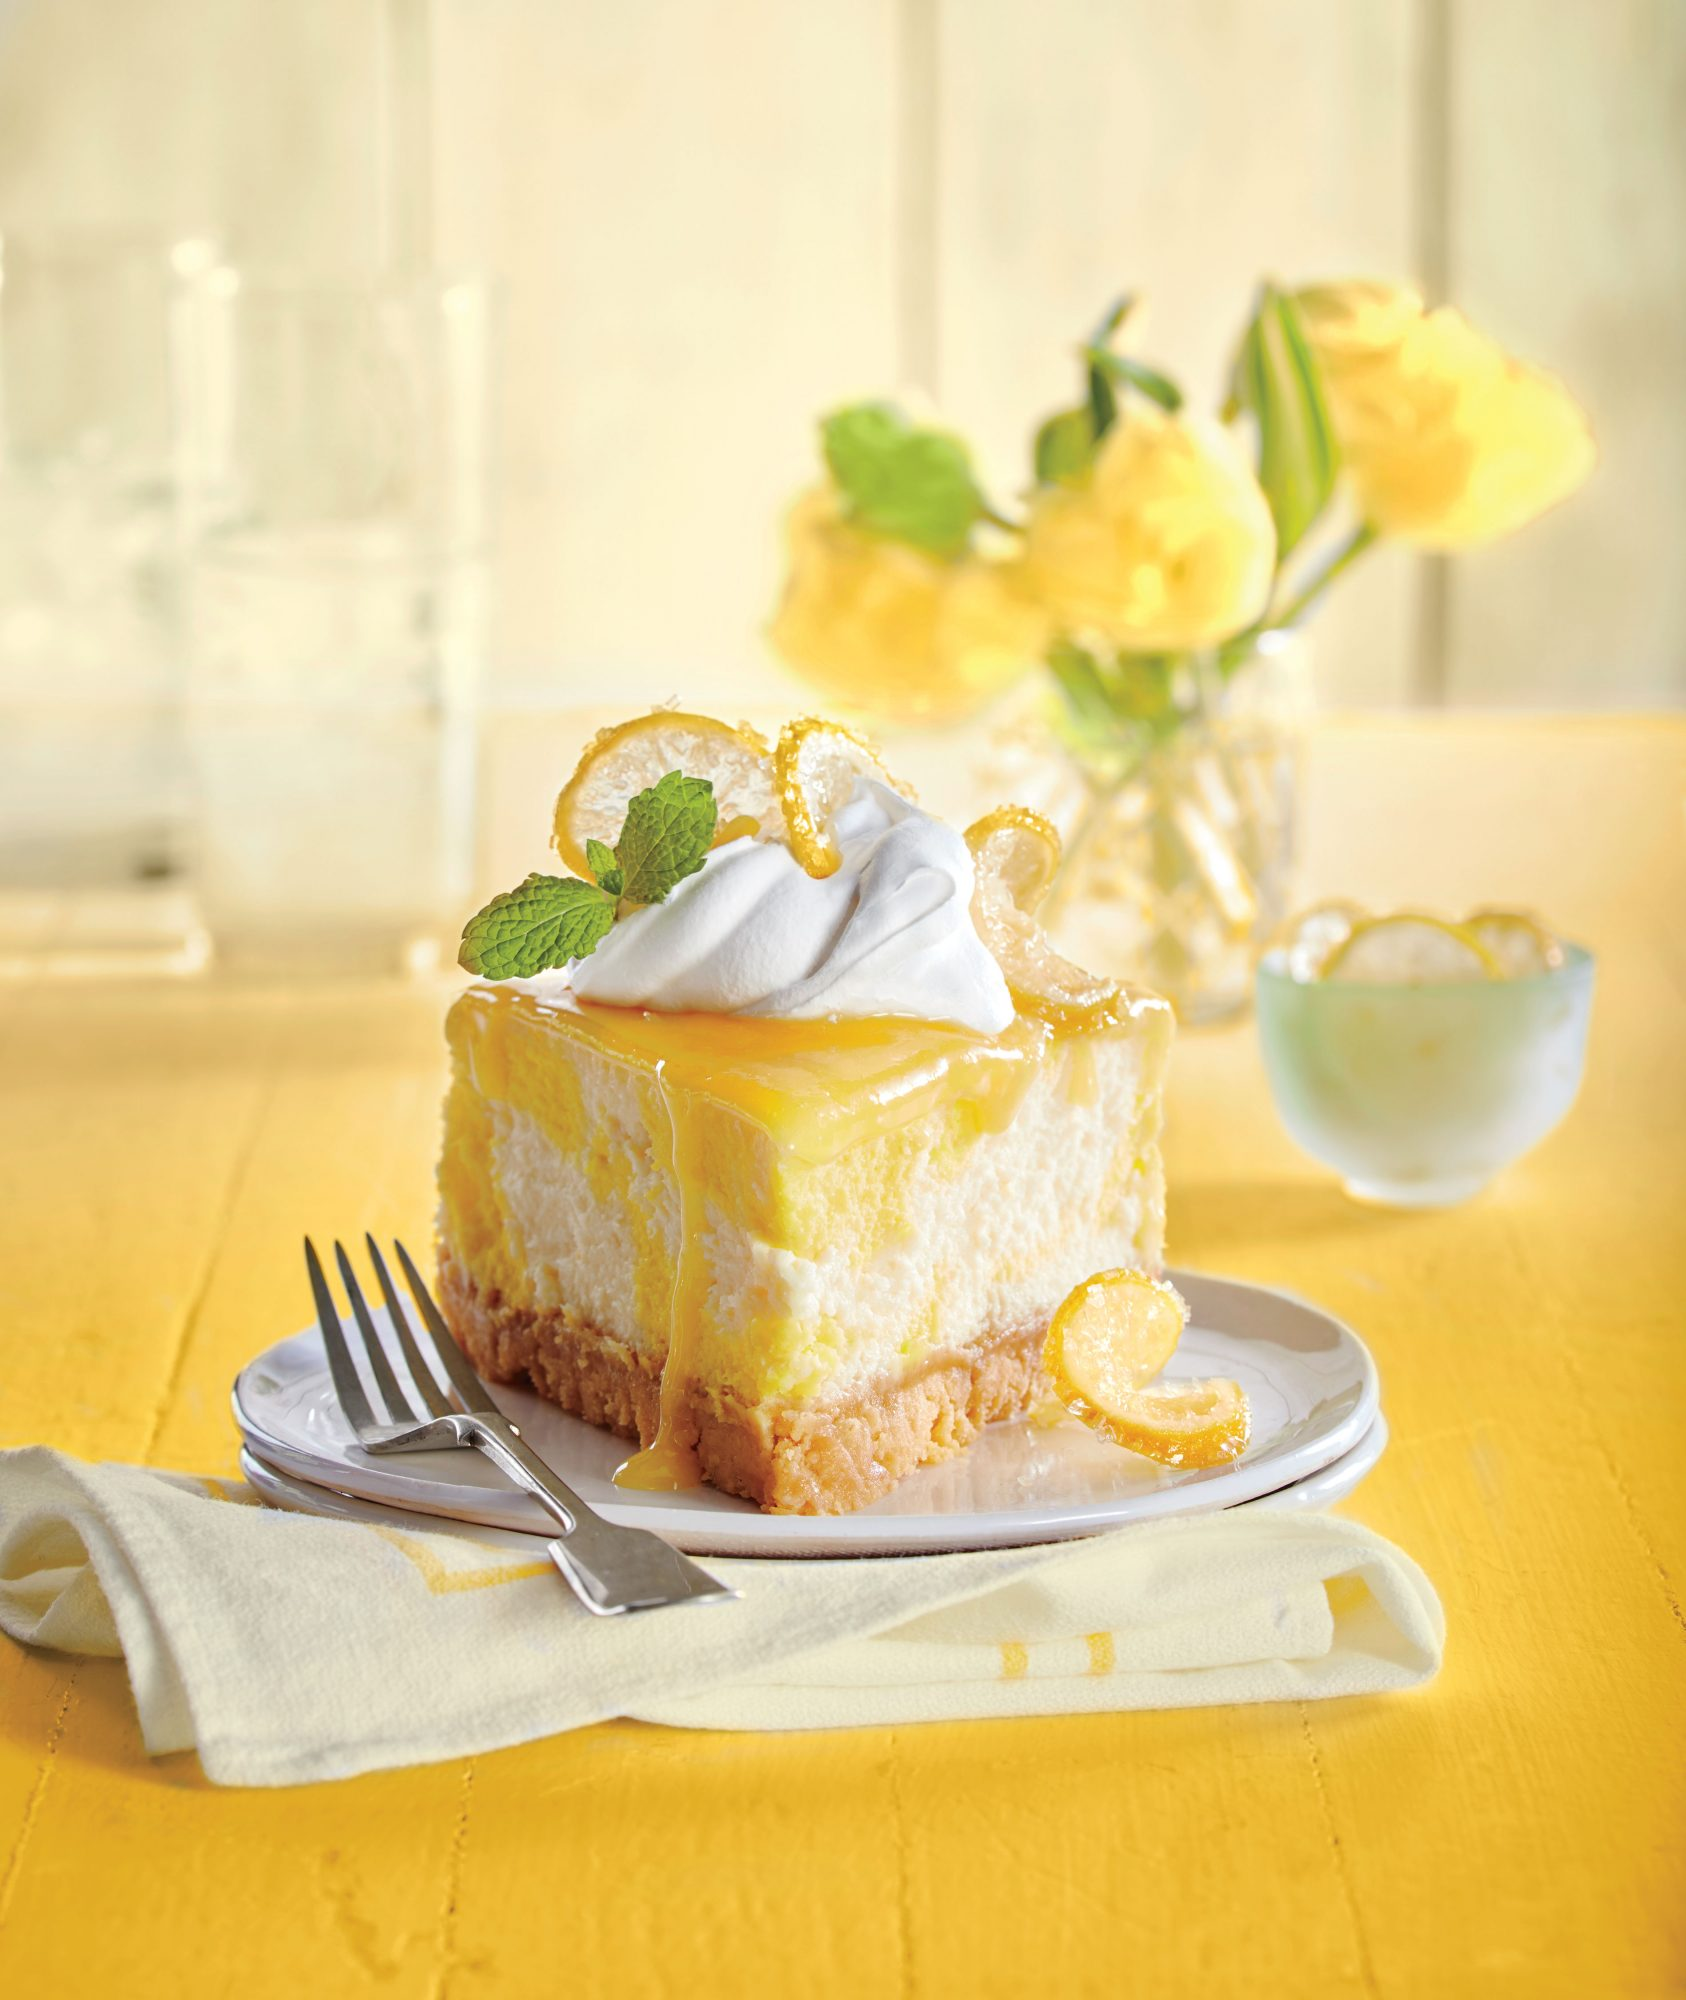 Dreamy Lemon Cheesecake image